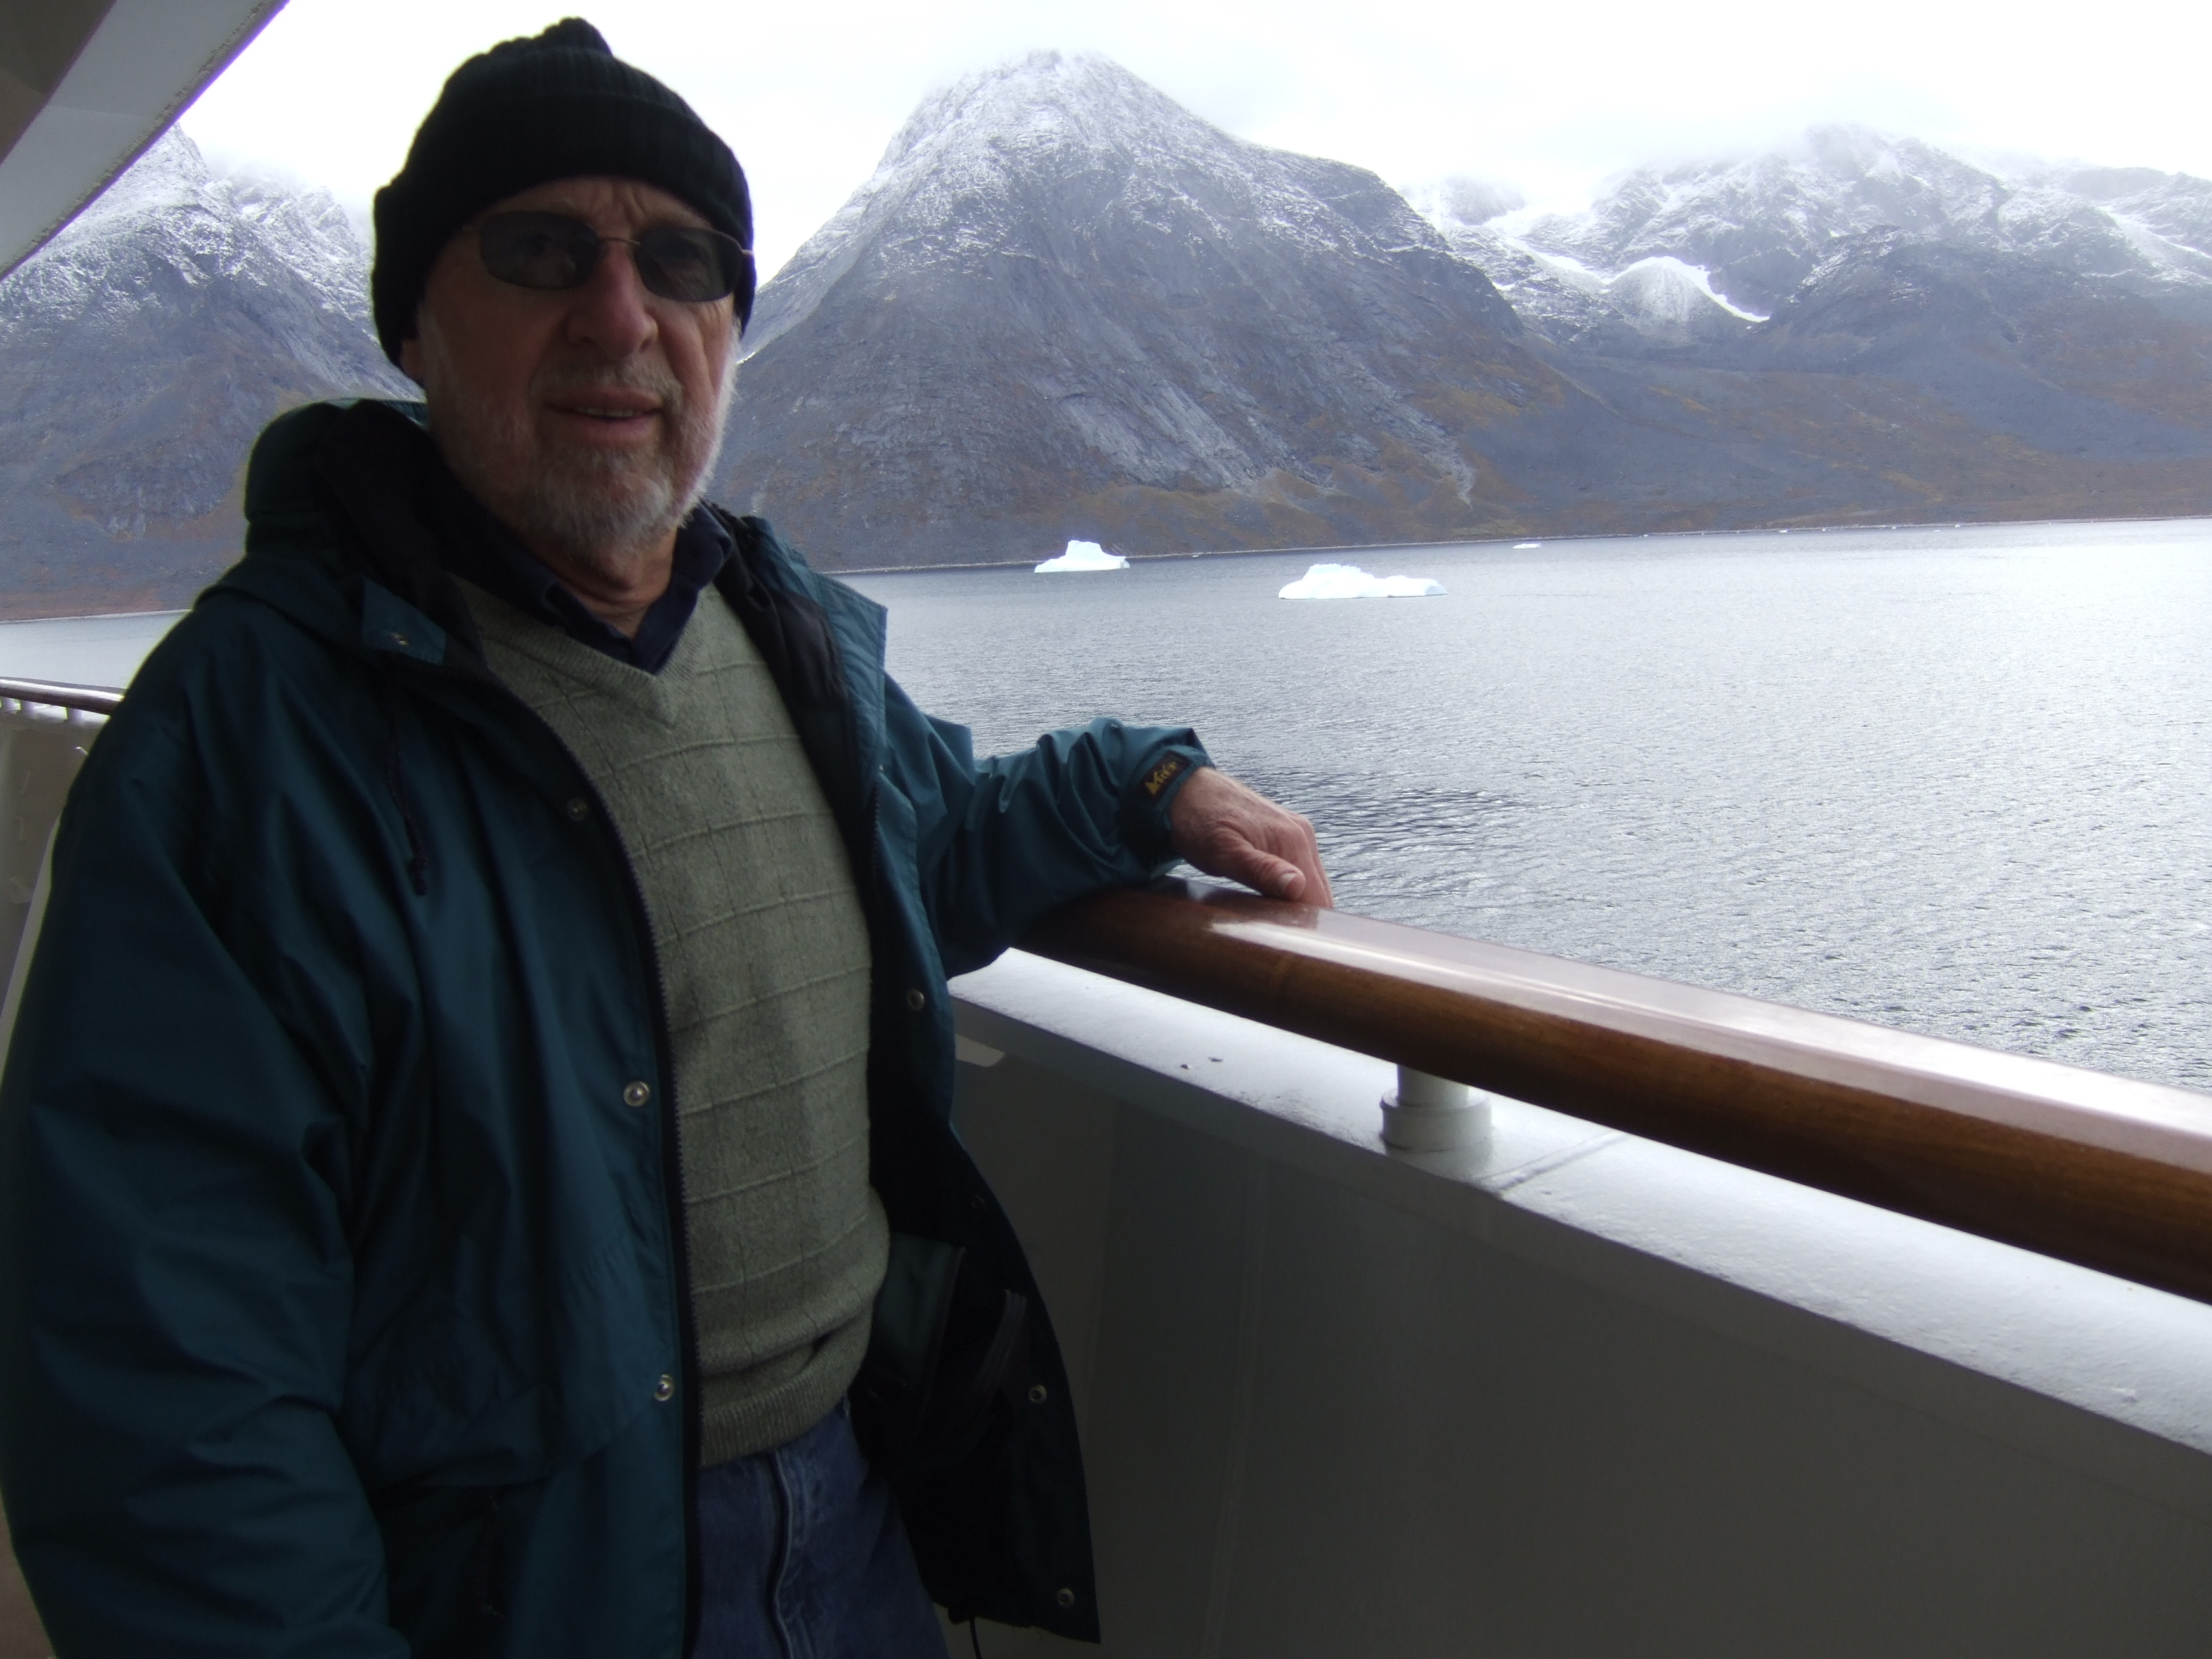 Northern Atlantic cruise off the coast of Greenland